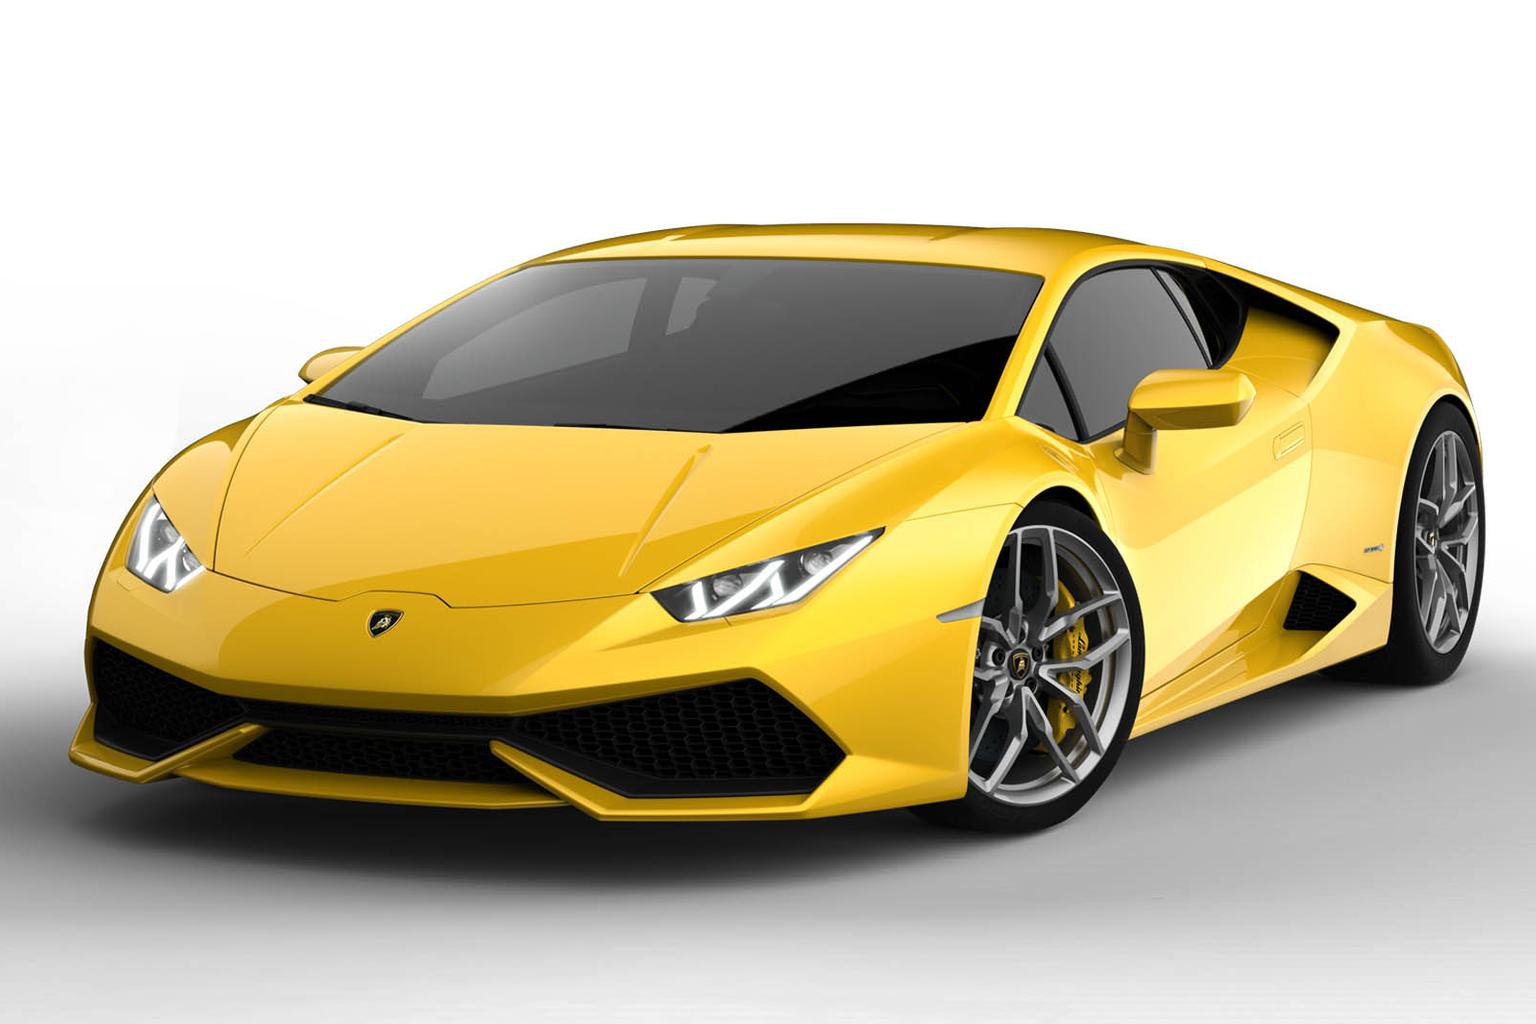 2014 Lamborghini Huracan revealed